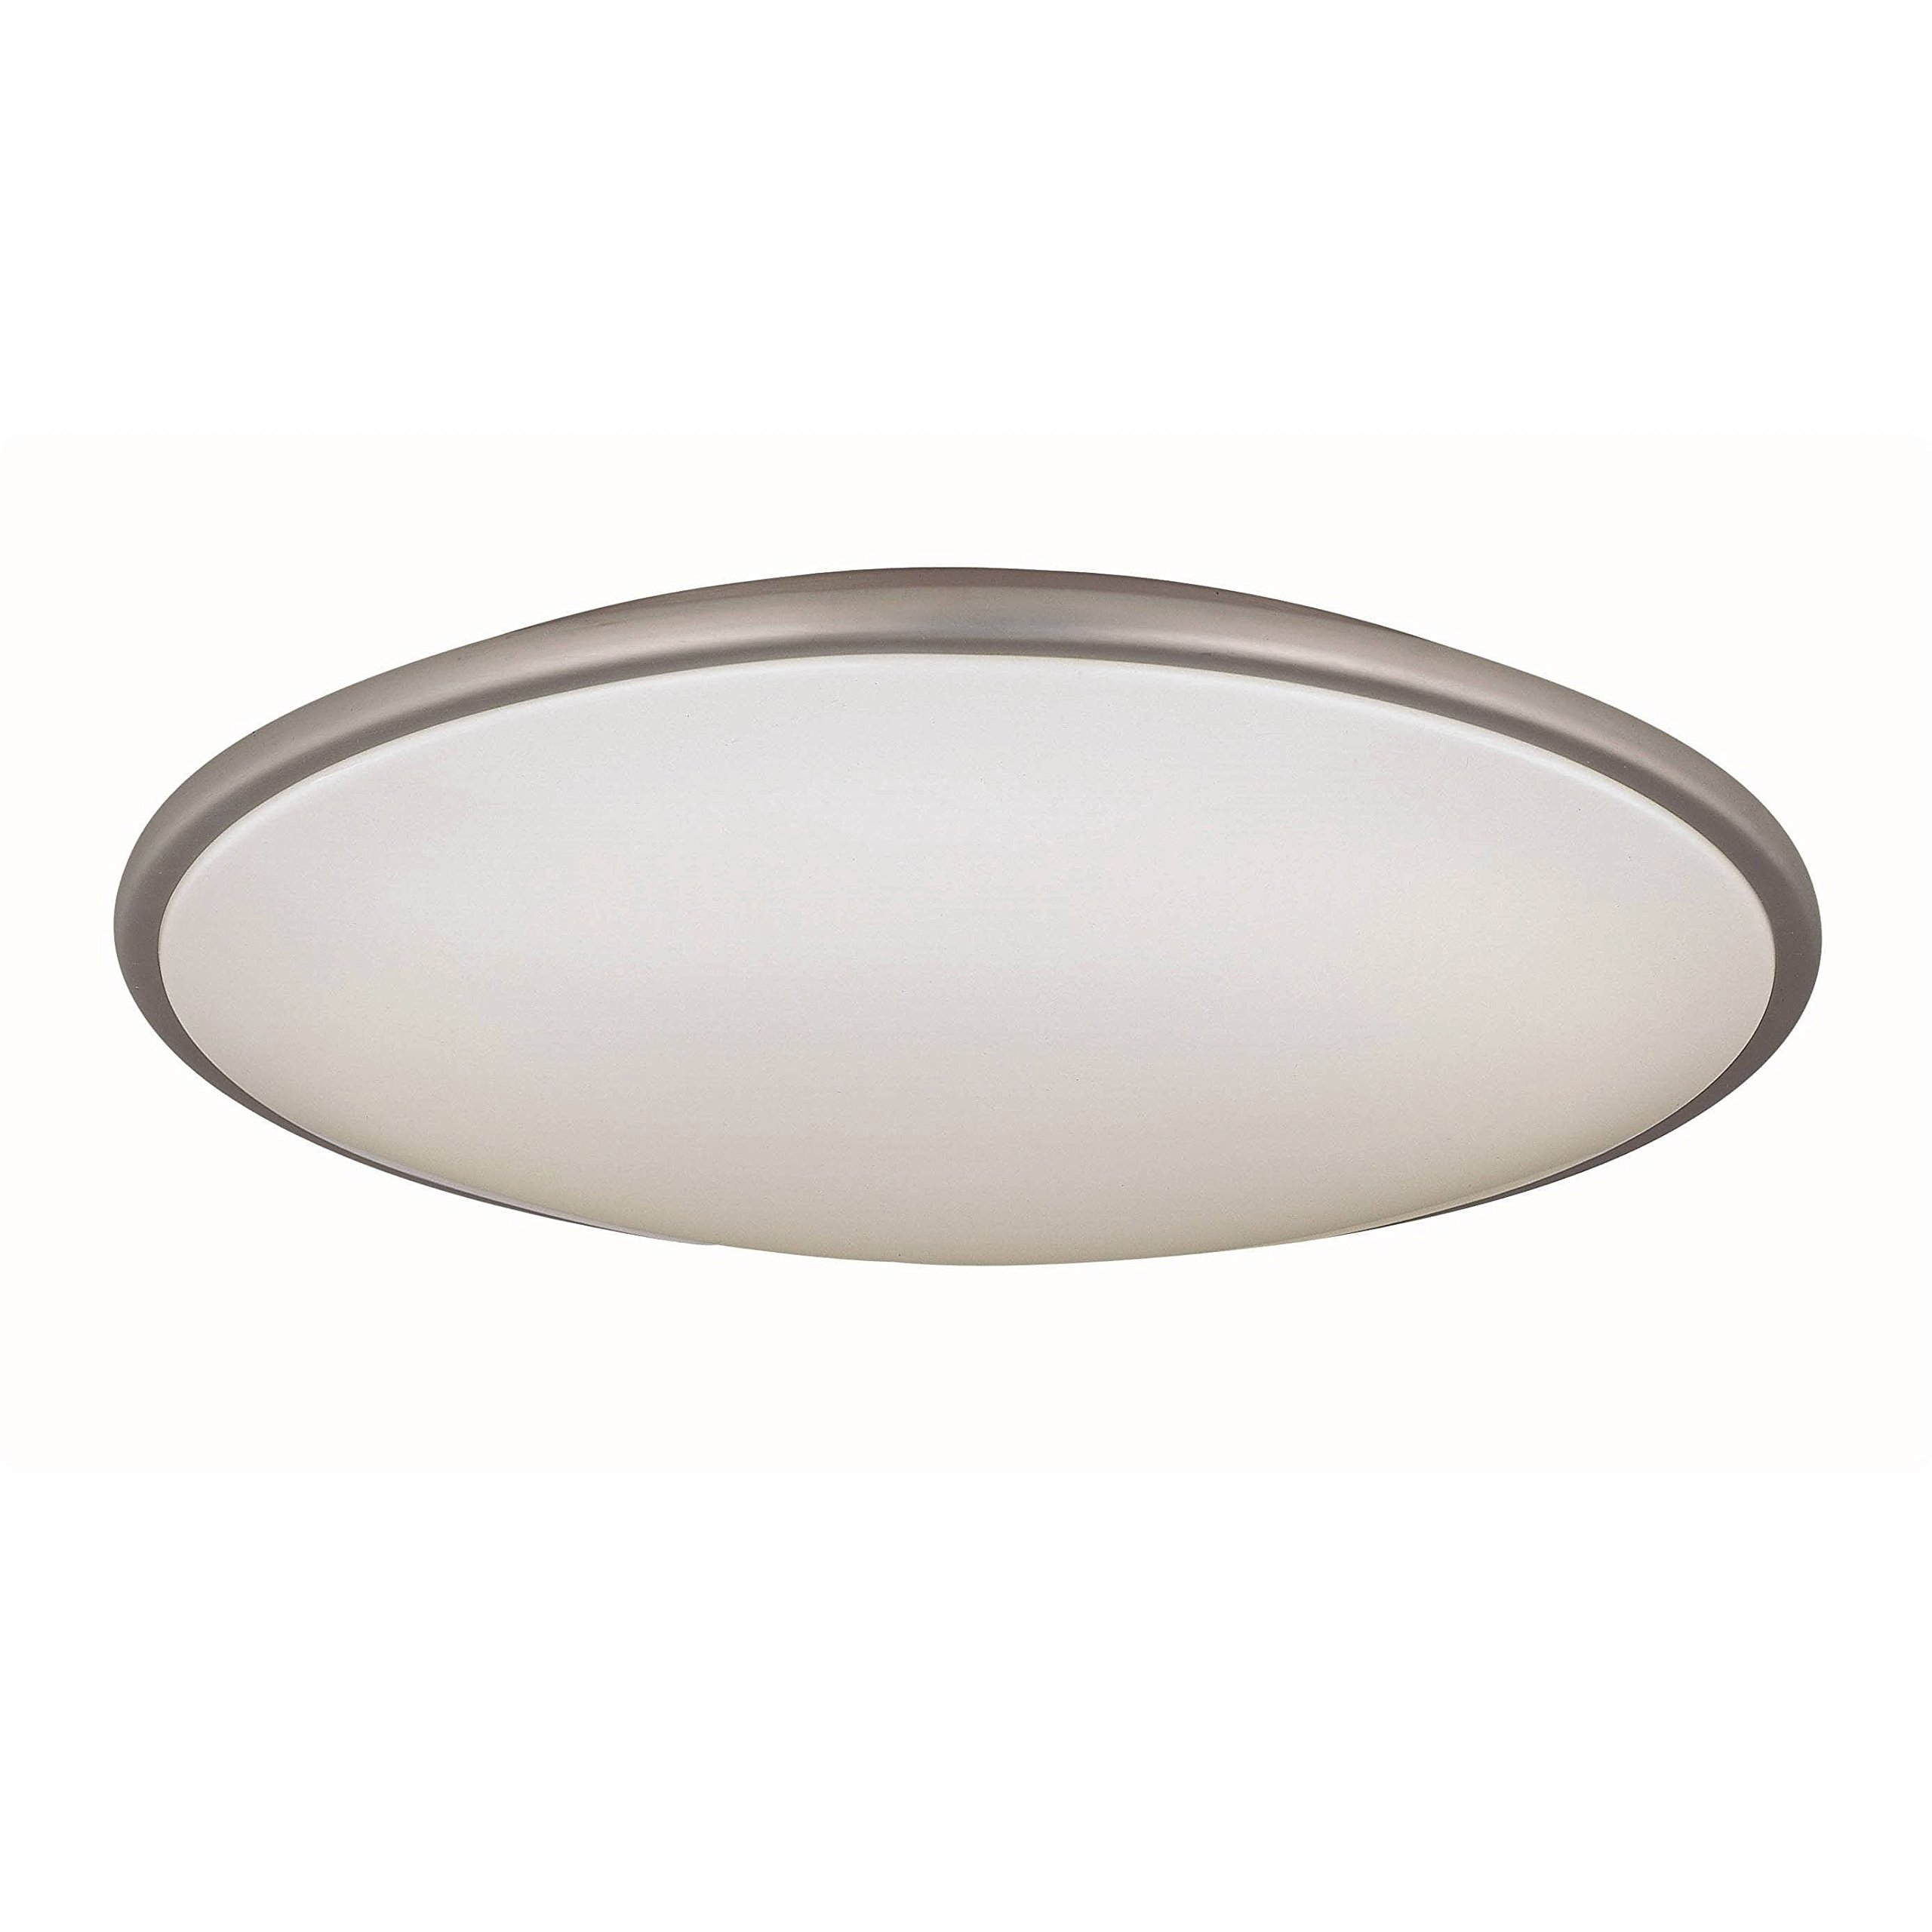 Lite Source LS-5412SS/WHT Pegeen 21-Inch Ceiling Flush Mount Lite, Satin Steel with White Acrylic